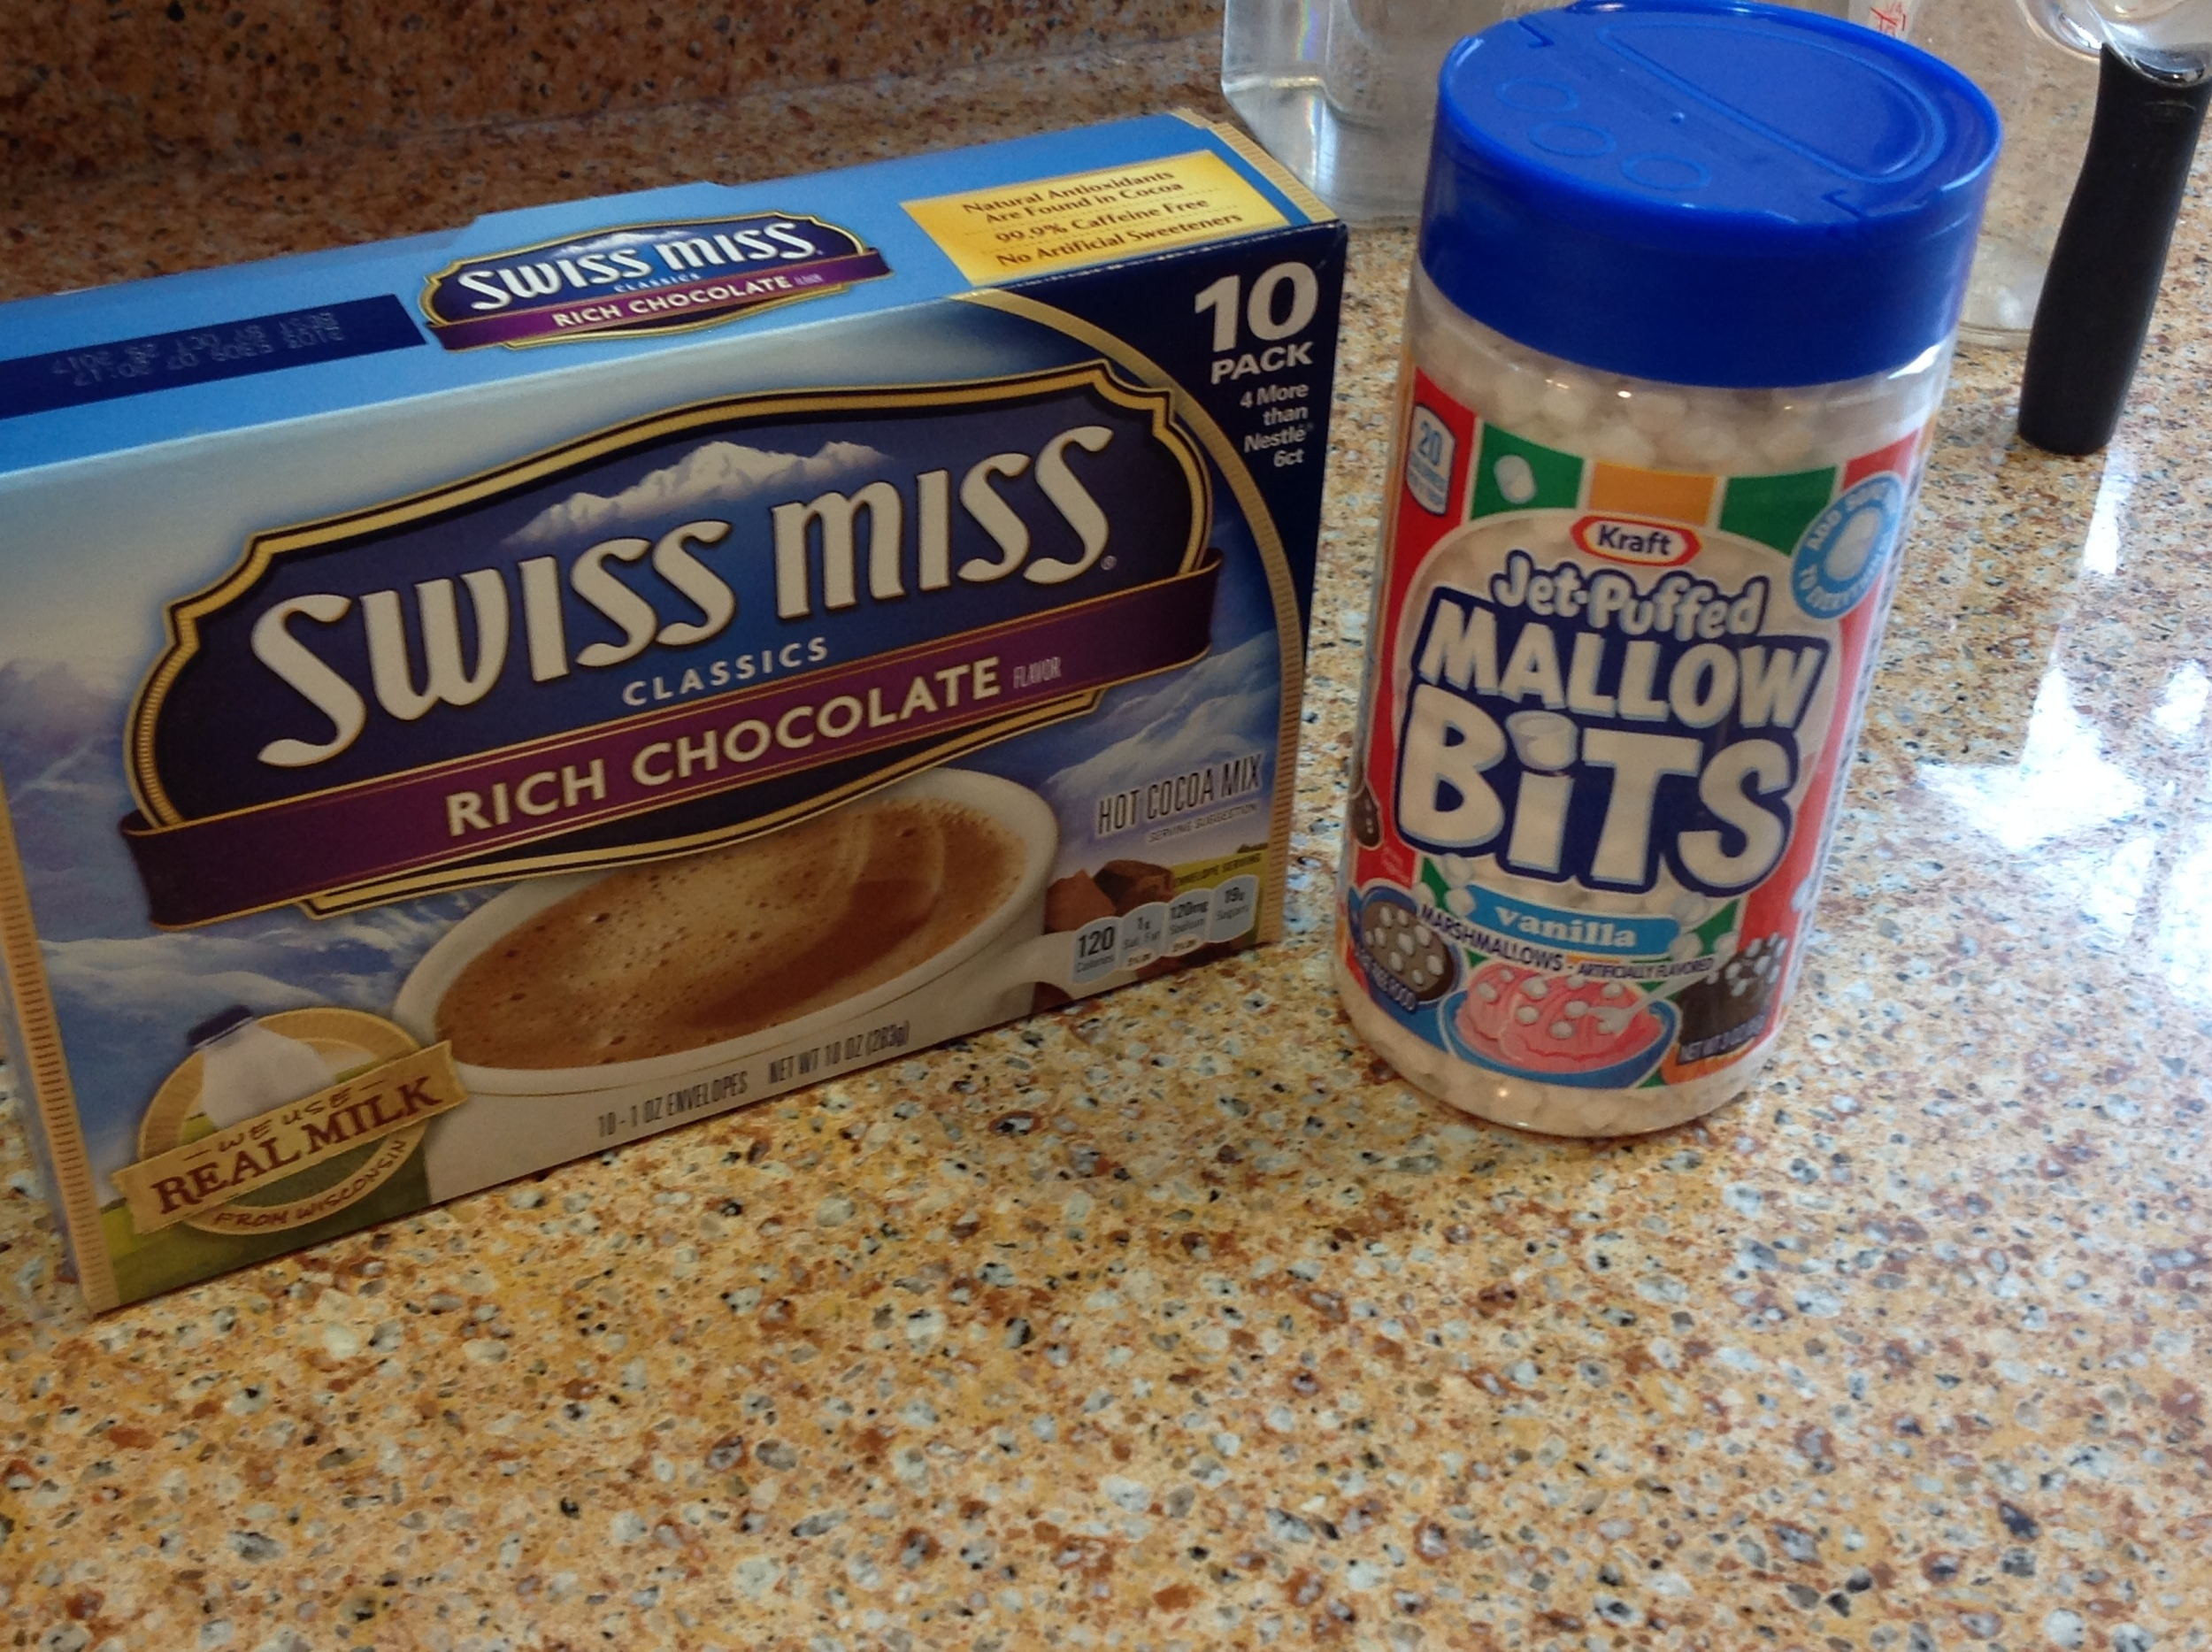 I used Swiss Miss cocoa and Kraft Mallow Bits